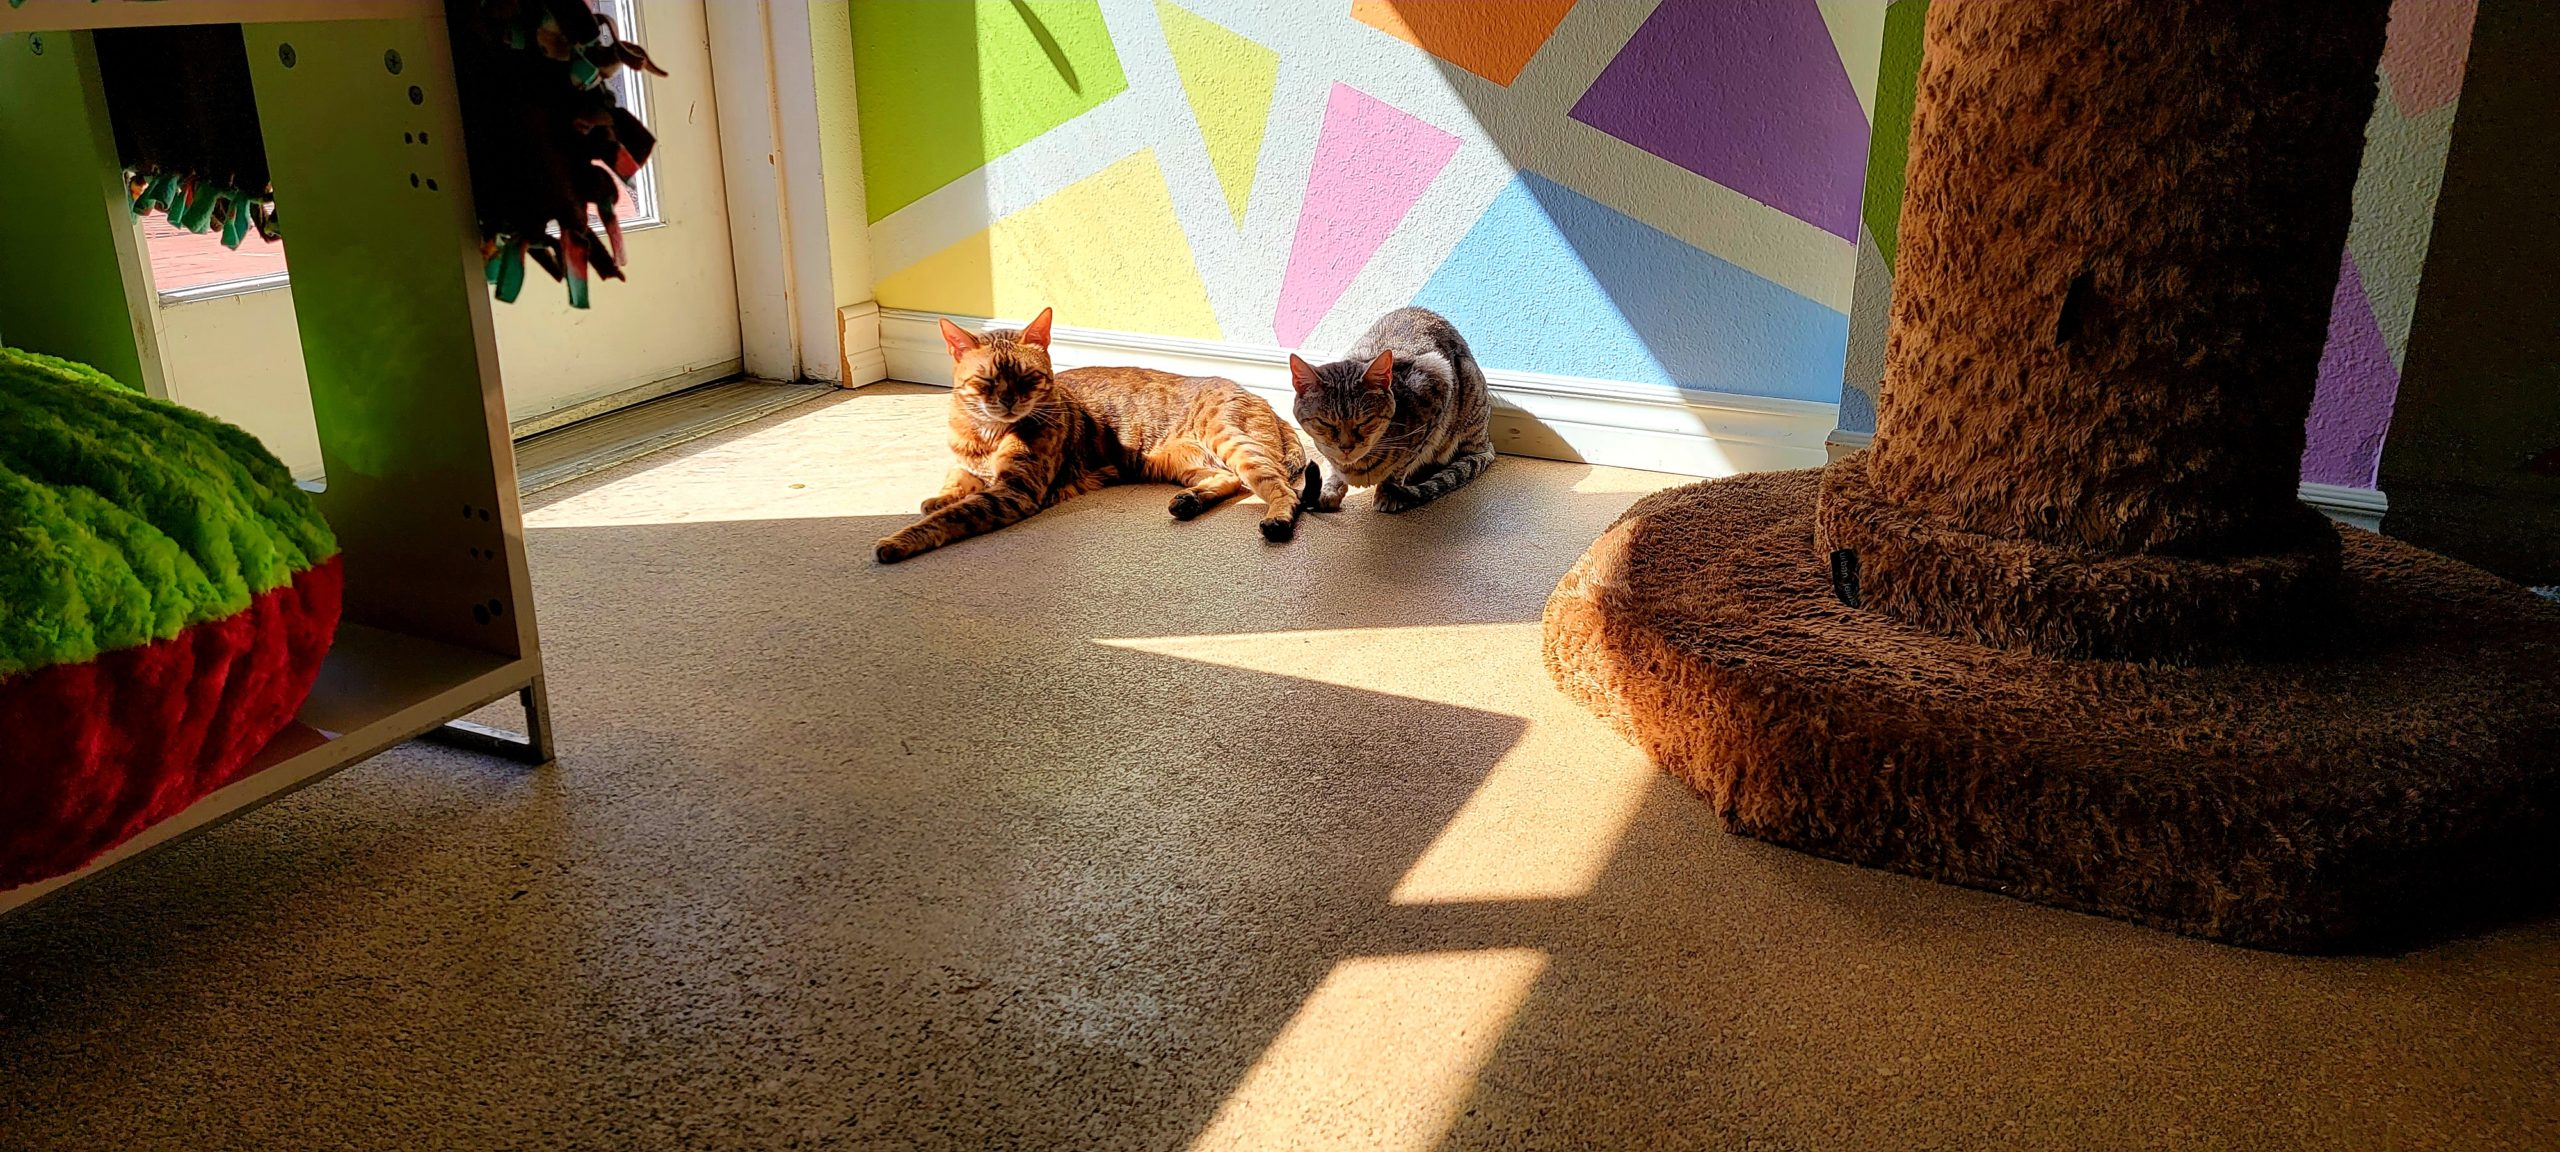 Meet Jacey and Leo at The Cat Cafe